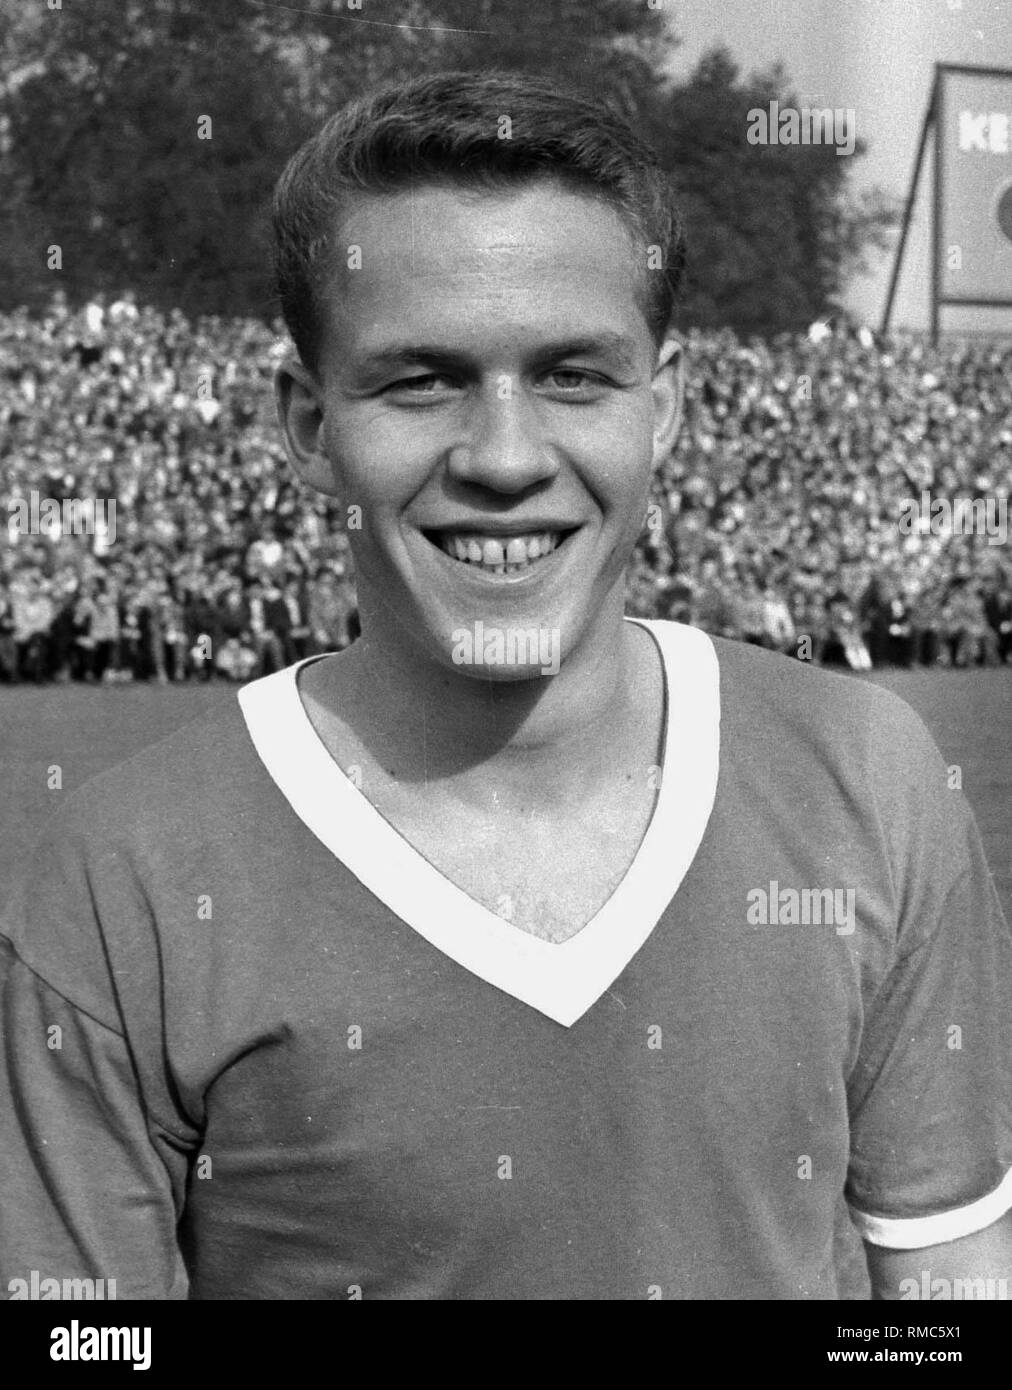 Football coach Otto Rehhagel in 1960 at Rot-Weiss Essen. For editorial use only! - Stock Image